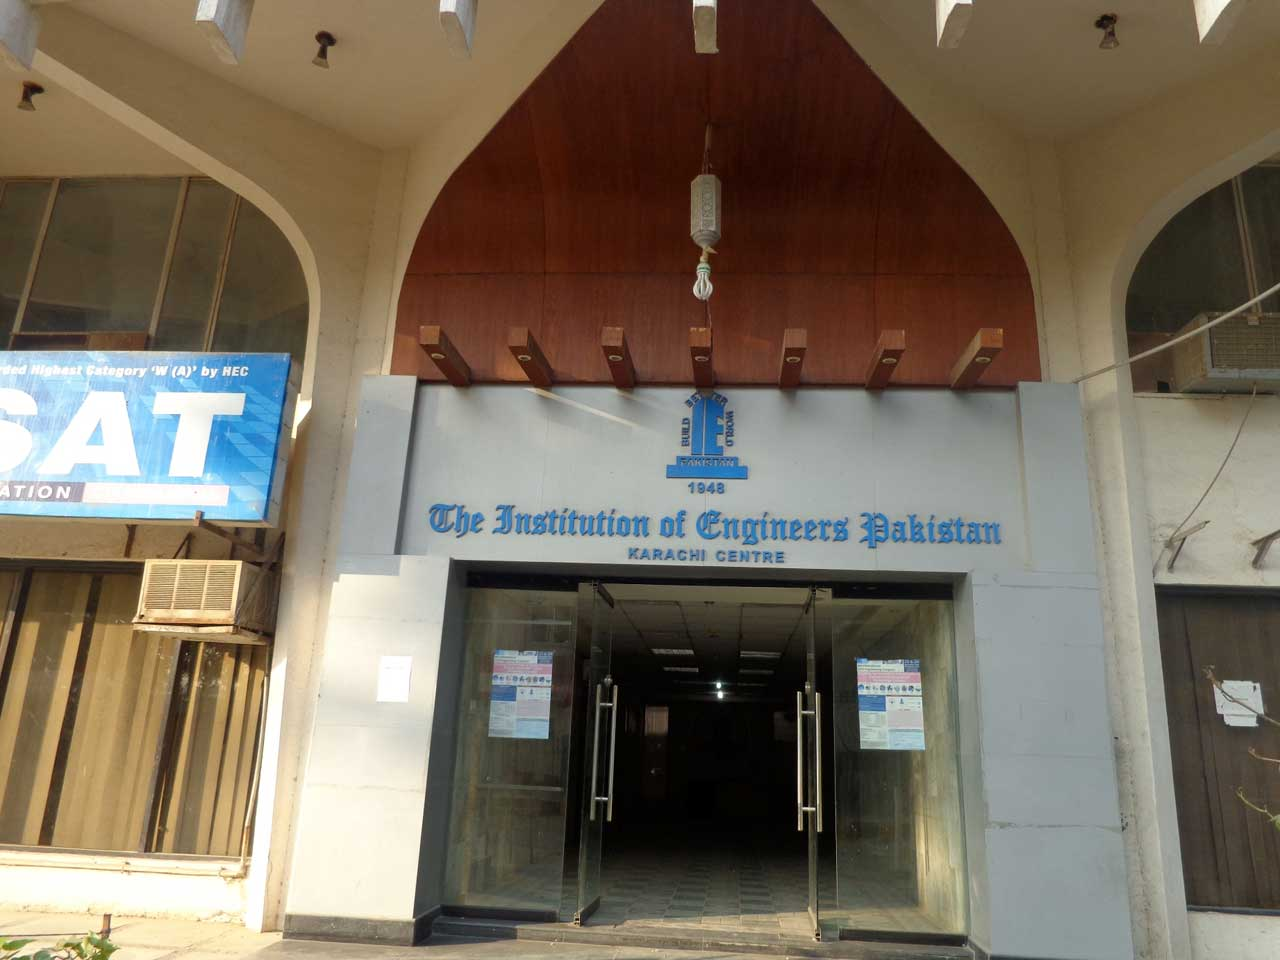 Entrance to IEP Building in Karachi